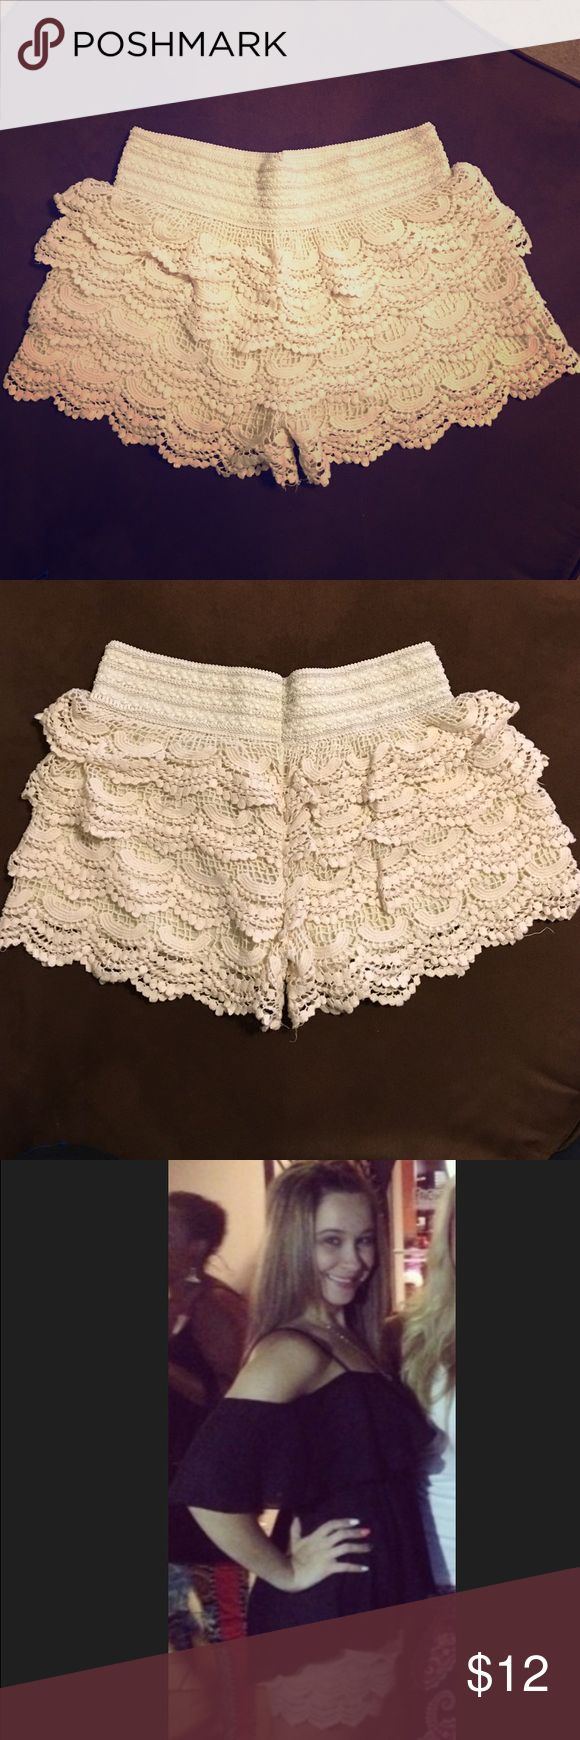 DAILY SALE‼️ Cream Crochet Lace Tiered Shorts Size medium. Worn a few short times. NO stains. Minimal wear. Measurements are in pics above. Comment any additional questions. Pair with a cute blouse! Bundle 2+ to save ‼️ Shorts